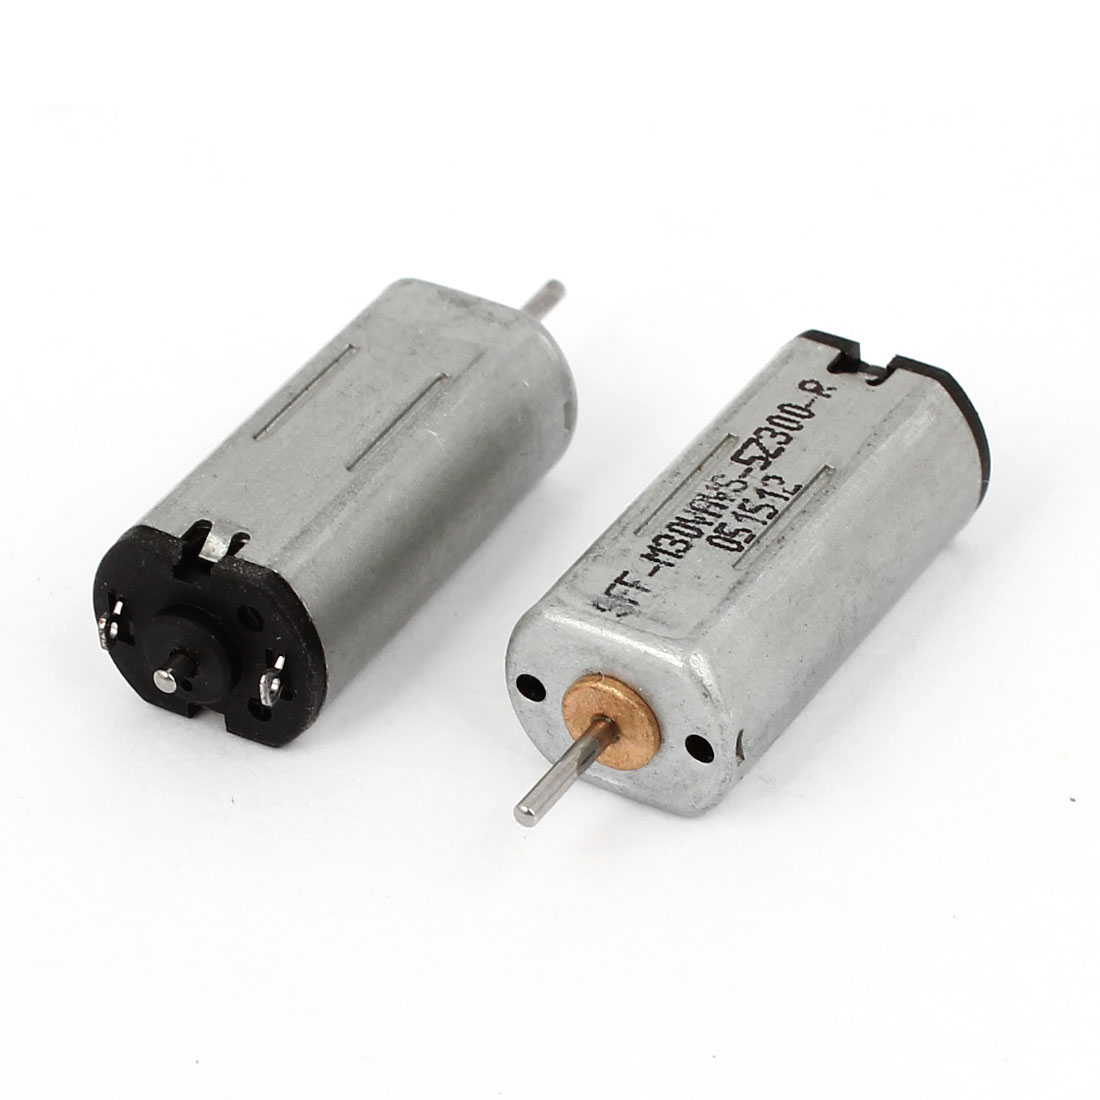 2 Pcs DC 1-3V 1mm Dia Shaft 18000 r/min Rotary Magnet Electric Motor